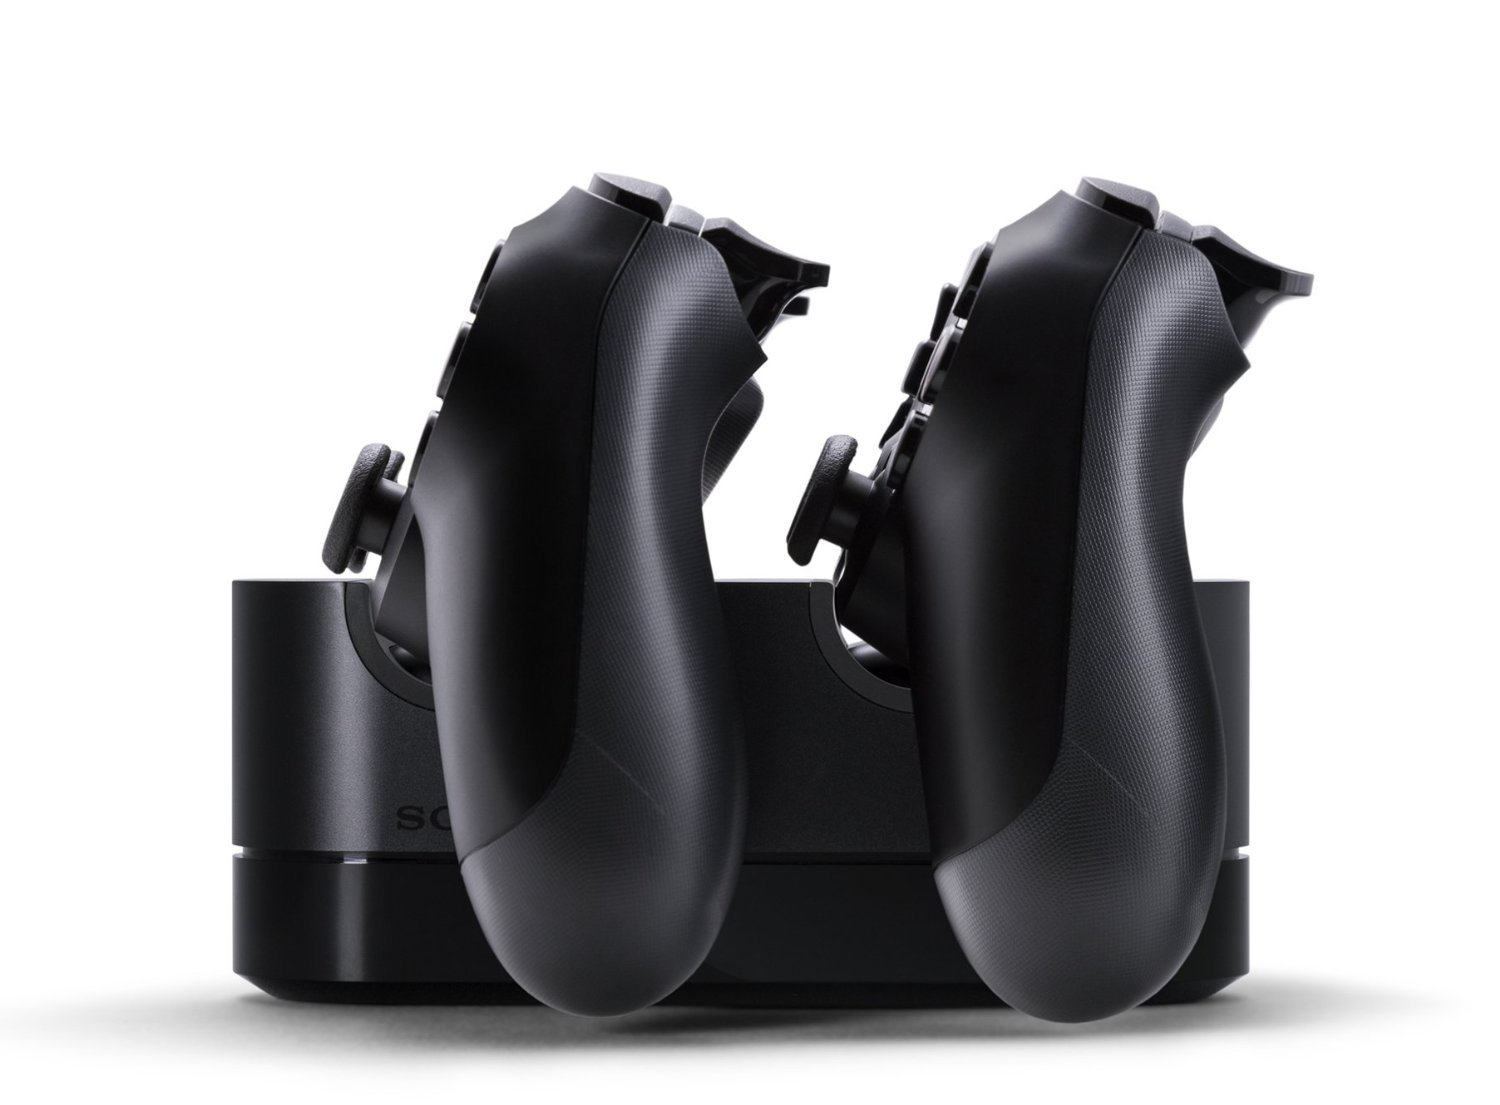 Playstation 4 Dual Shock 4 Dual Charging Station for PS4 image